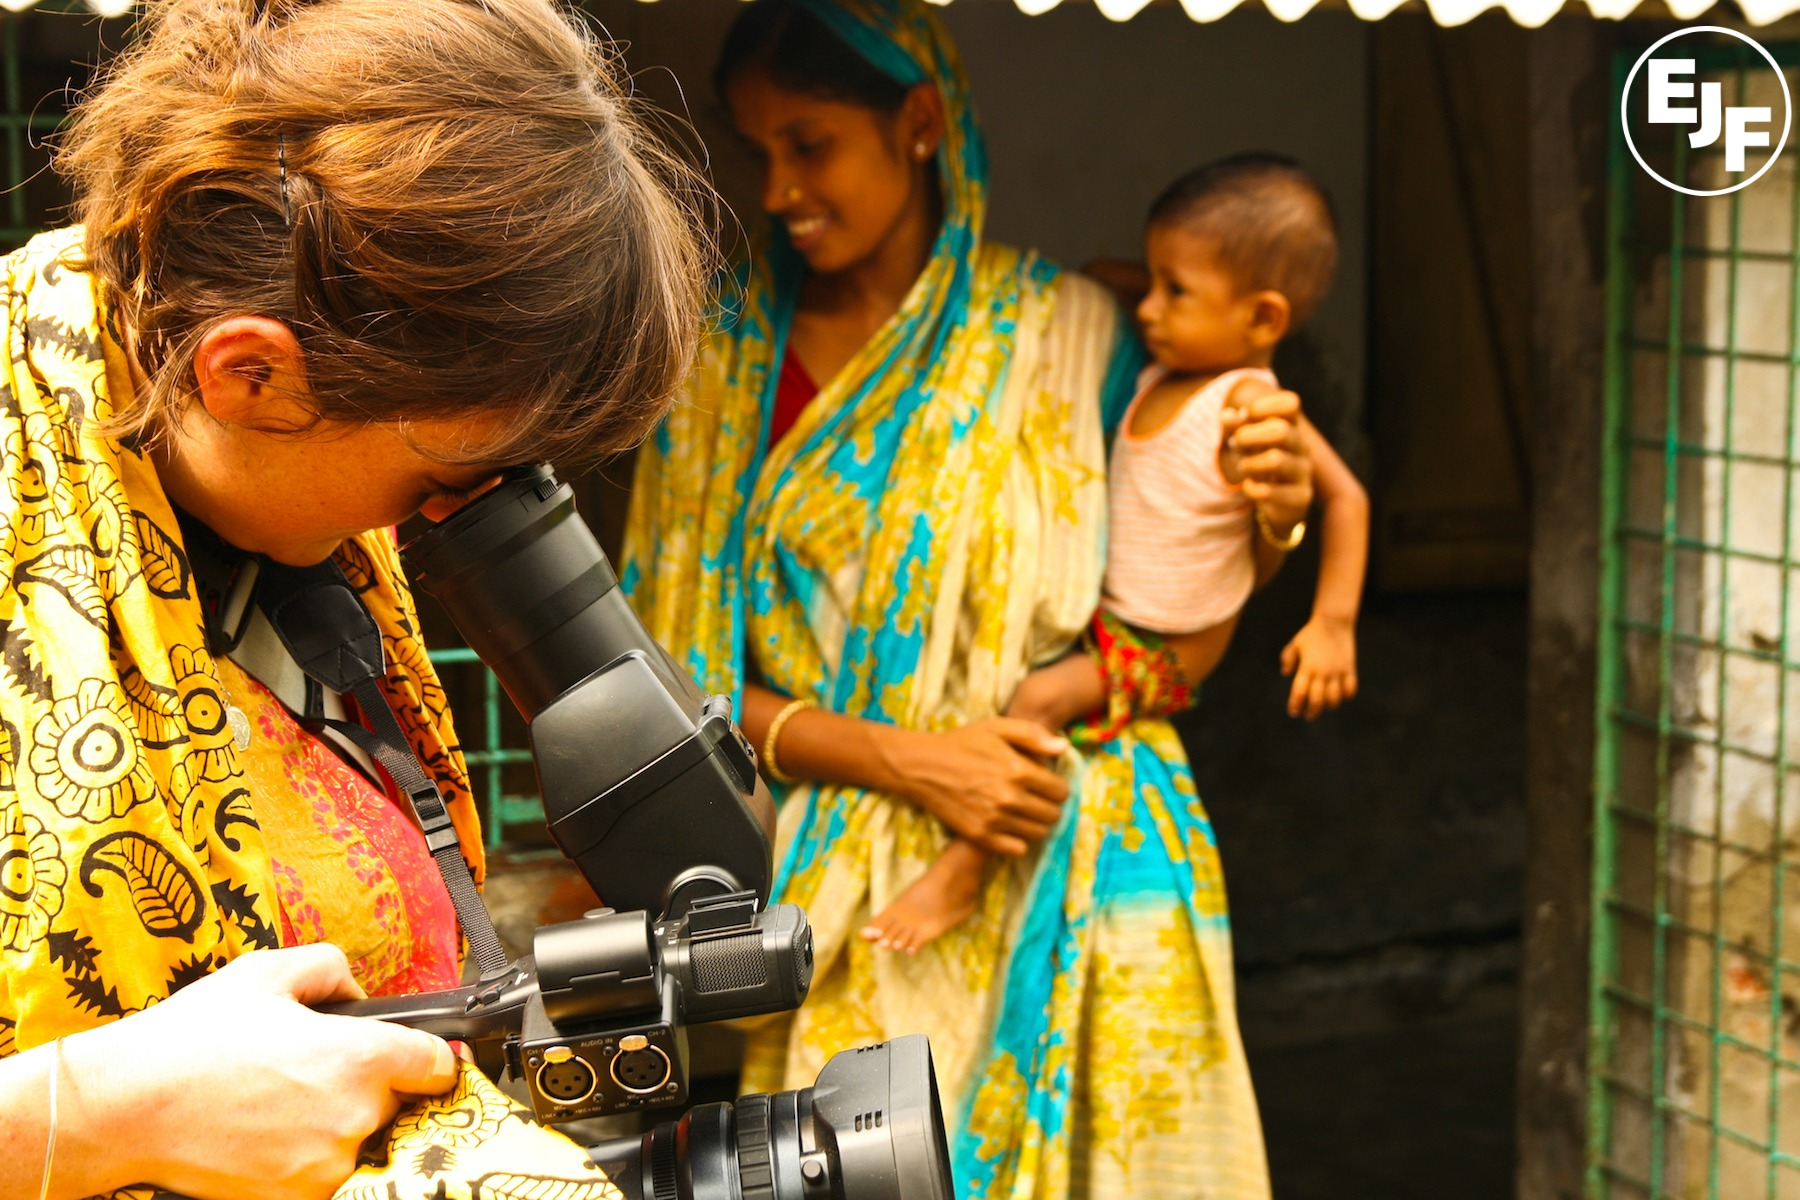 RS372_Filming-inerview-with-Haowa-Begum-in-Khulna-11.21.03-2.jpg#asset:980